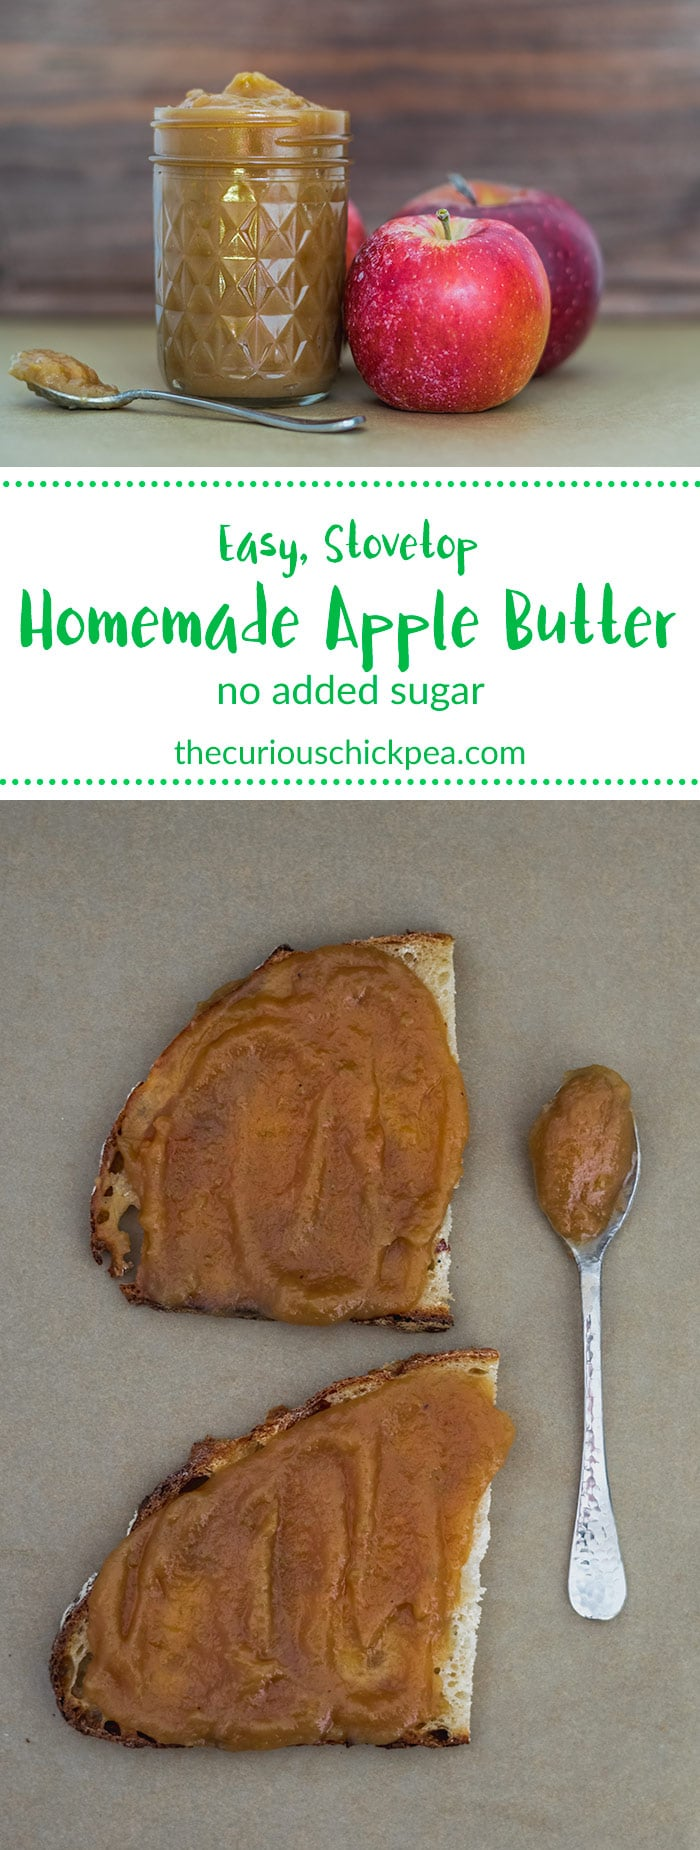 Easy Stovetop Apple Butter | This apple butter is perfectly sweet and tart with no added sugar. It cooks slowly on the stove to a buttery texture and is bursting with apple flavor. | thecuriouschickpea #vegan #apples #dessert